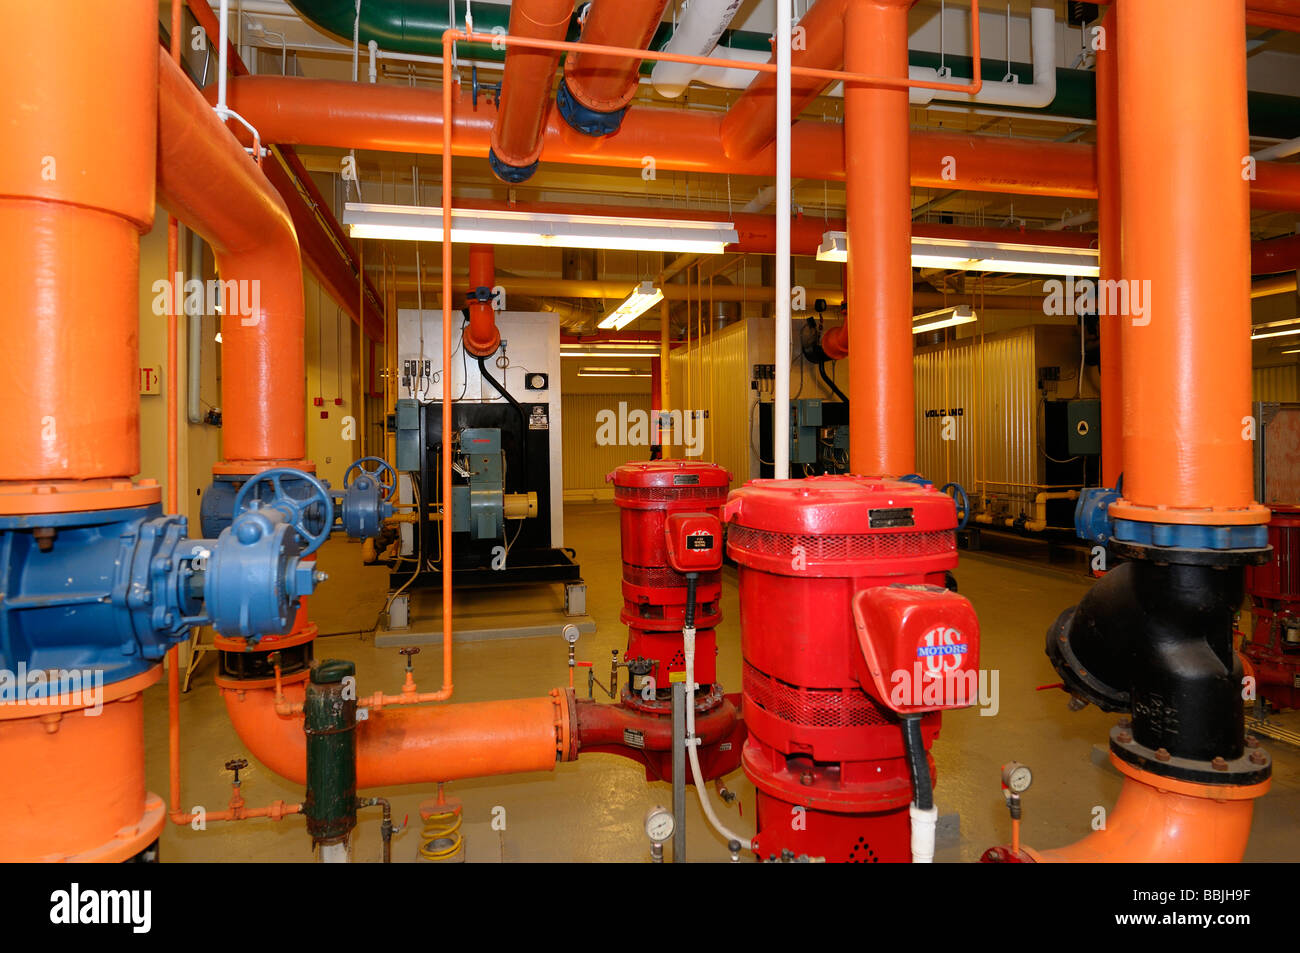 Row of furnaces and hot water pipes painted orange in the boiler room of a highrise office building - Stock Image